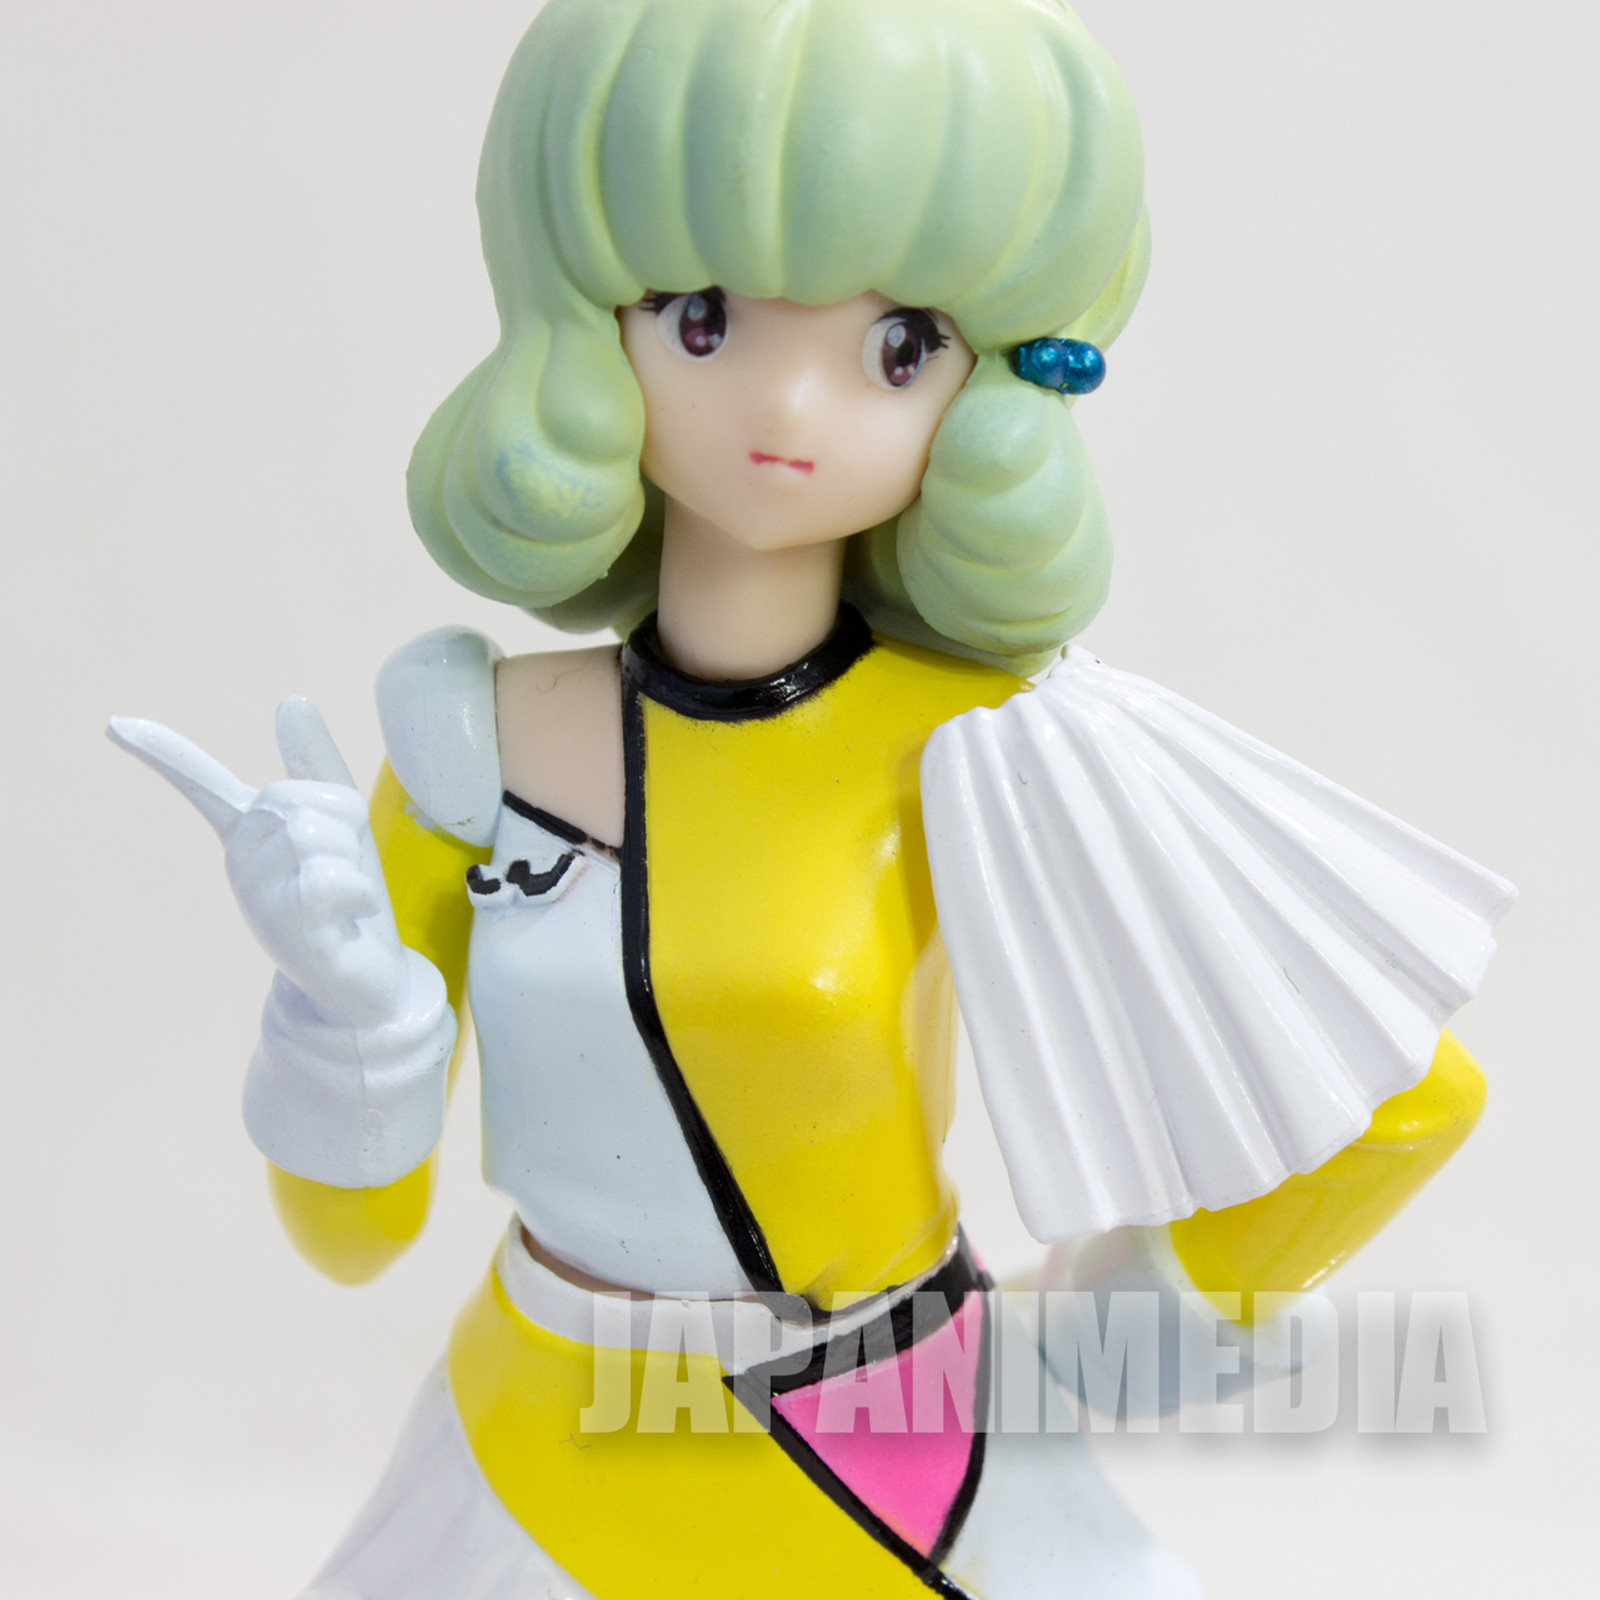 WINGMAN Miku Ogawa Limited Color Ver. Figure Collection JAPAN ANIME MANGA